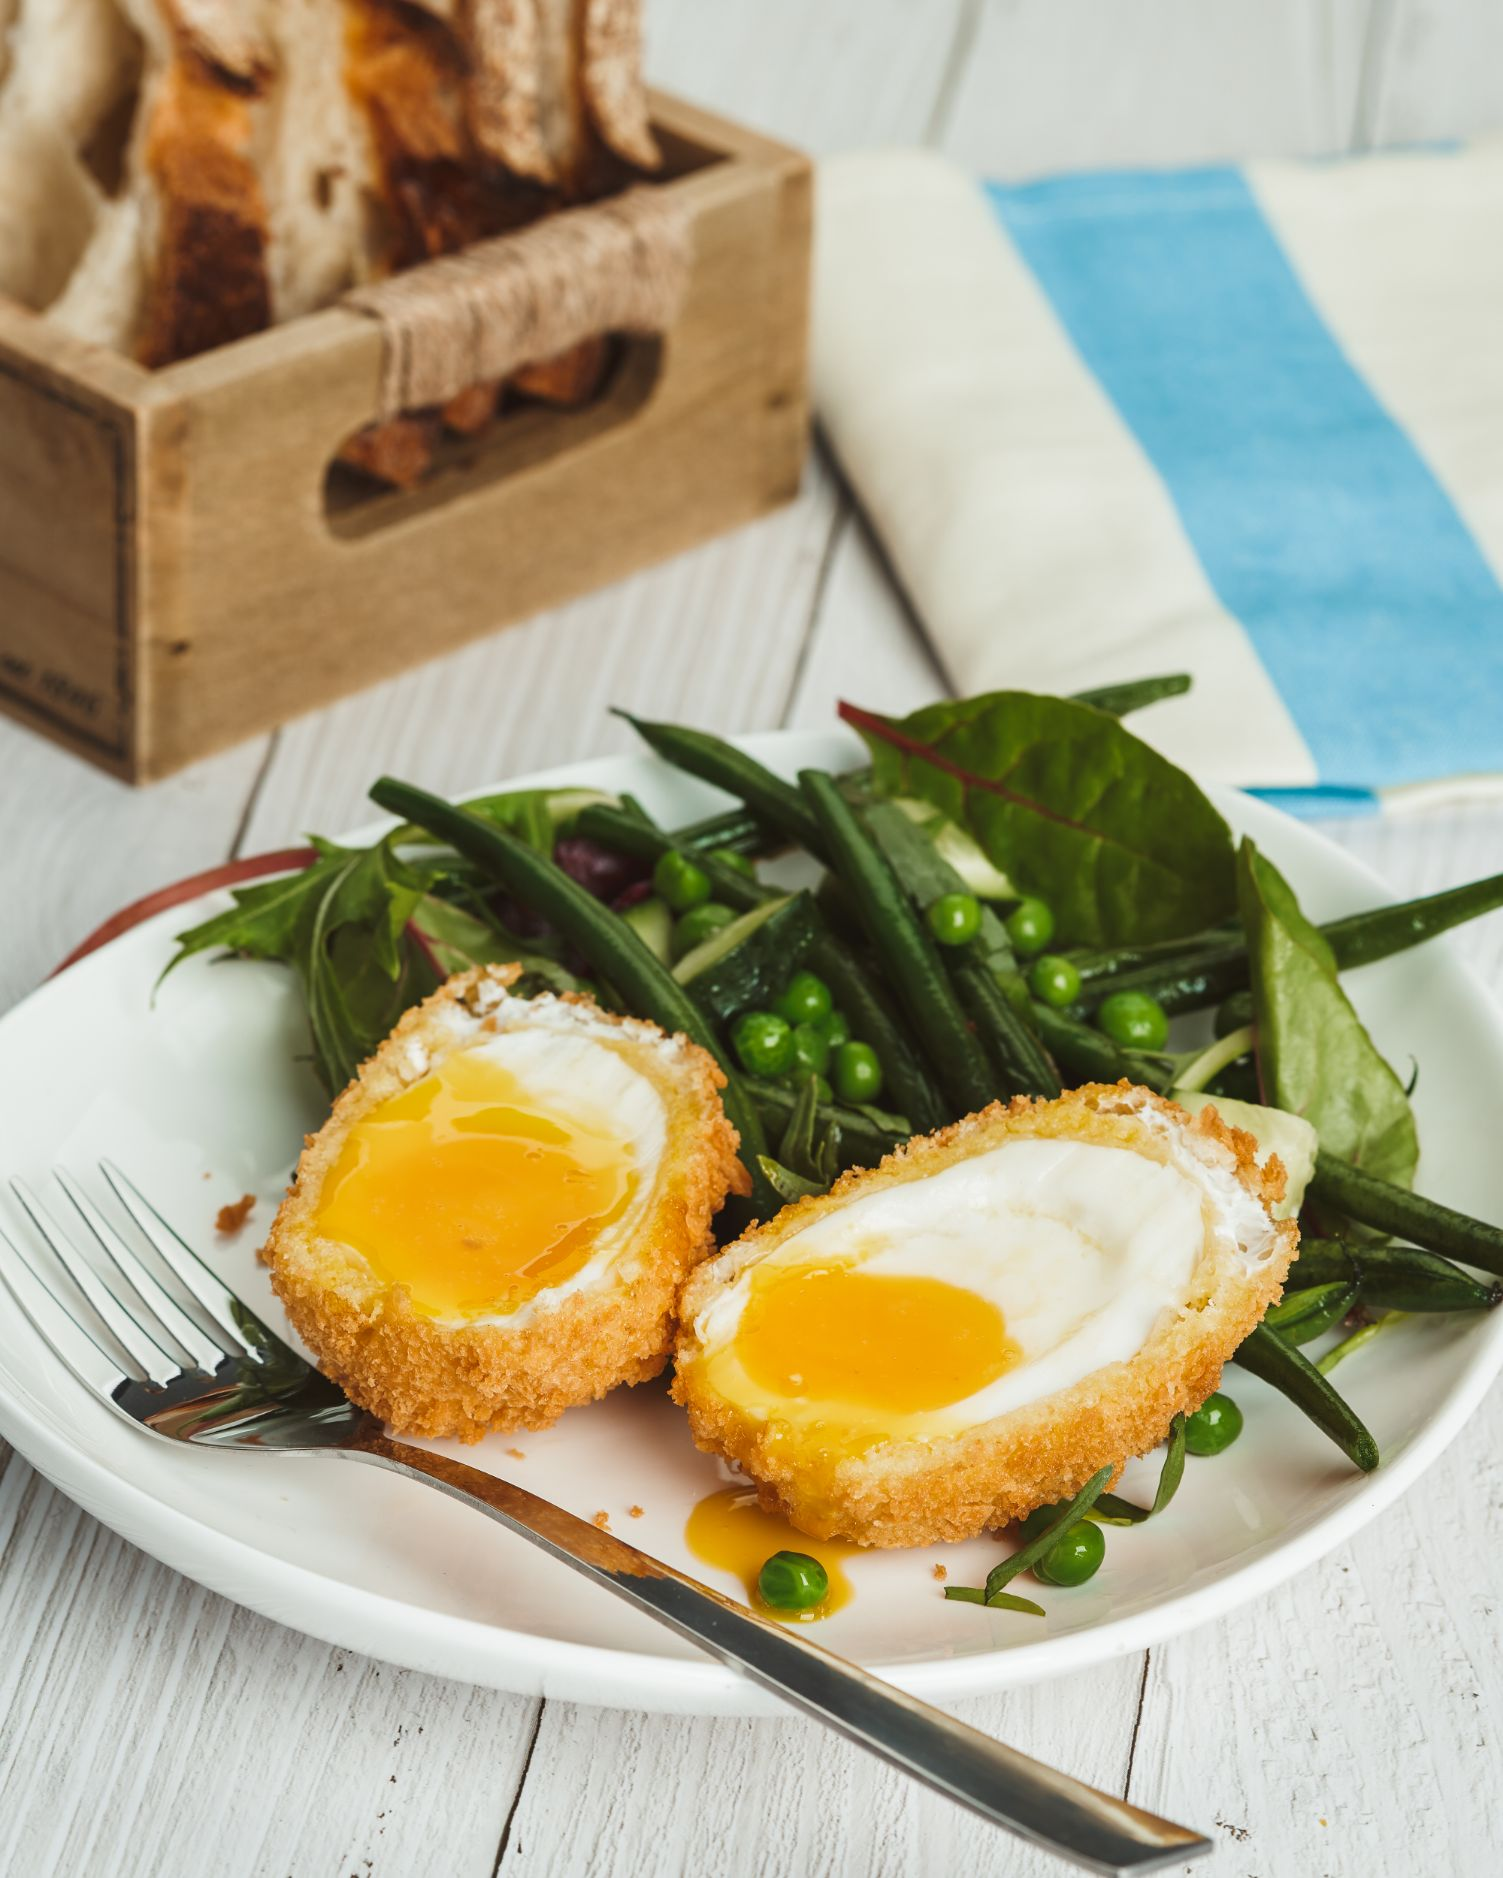 Crispy eggs with a summer salad